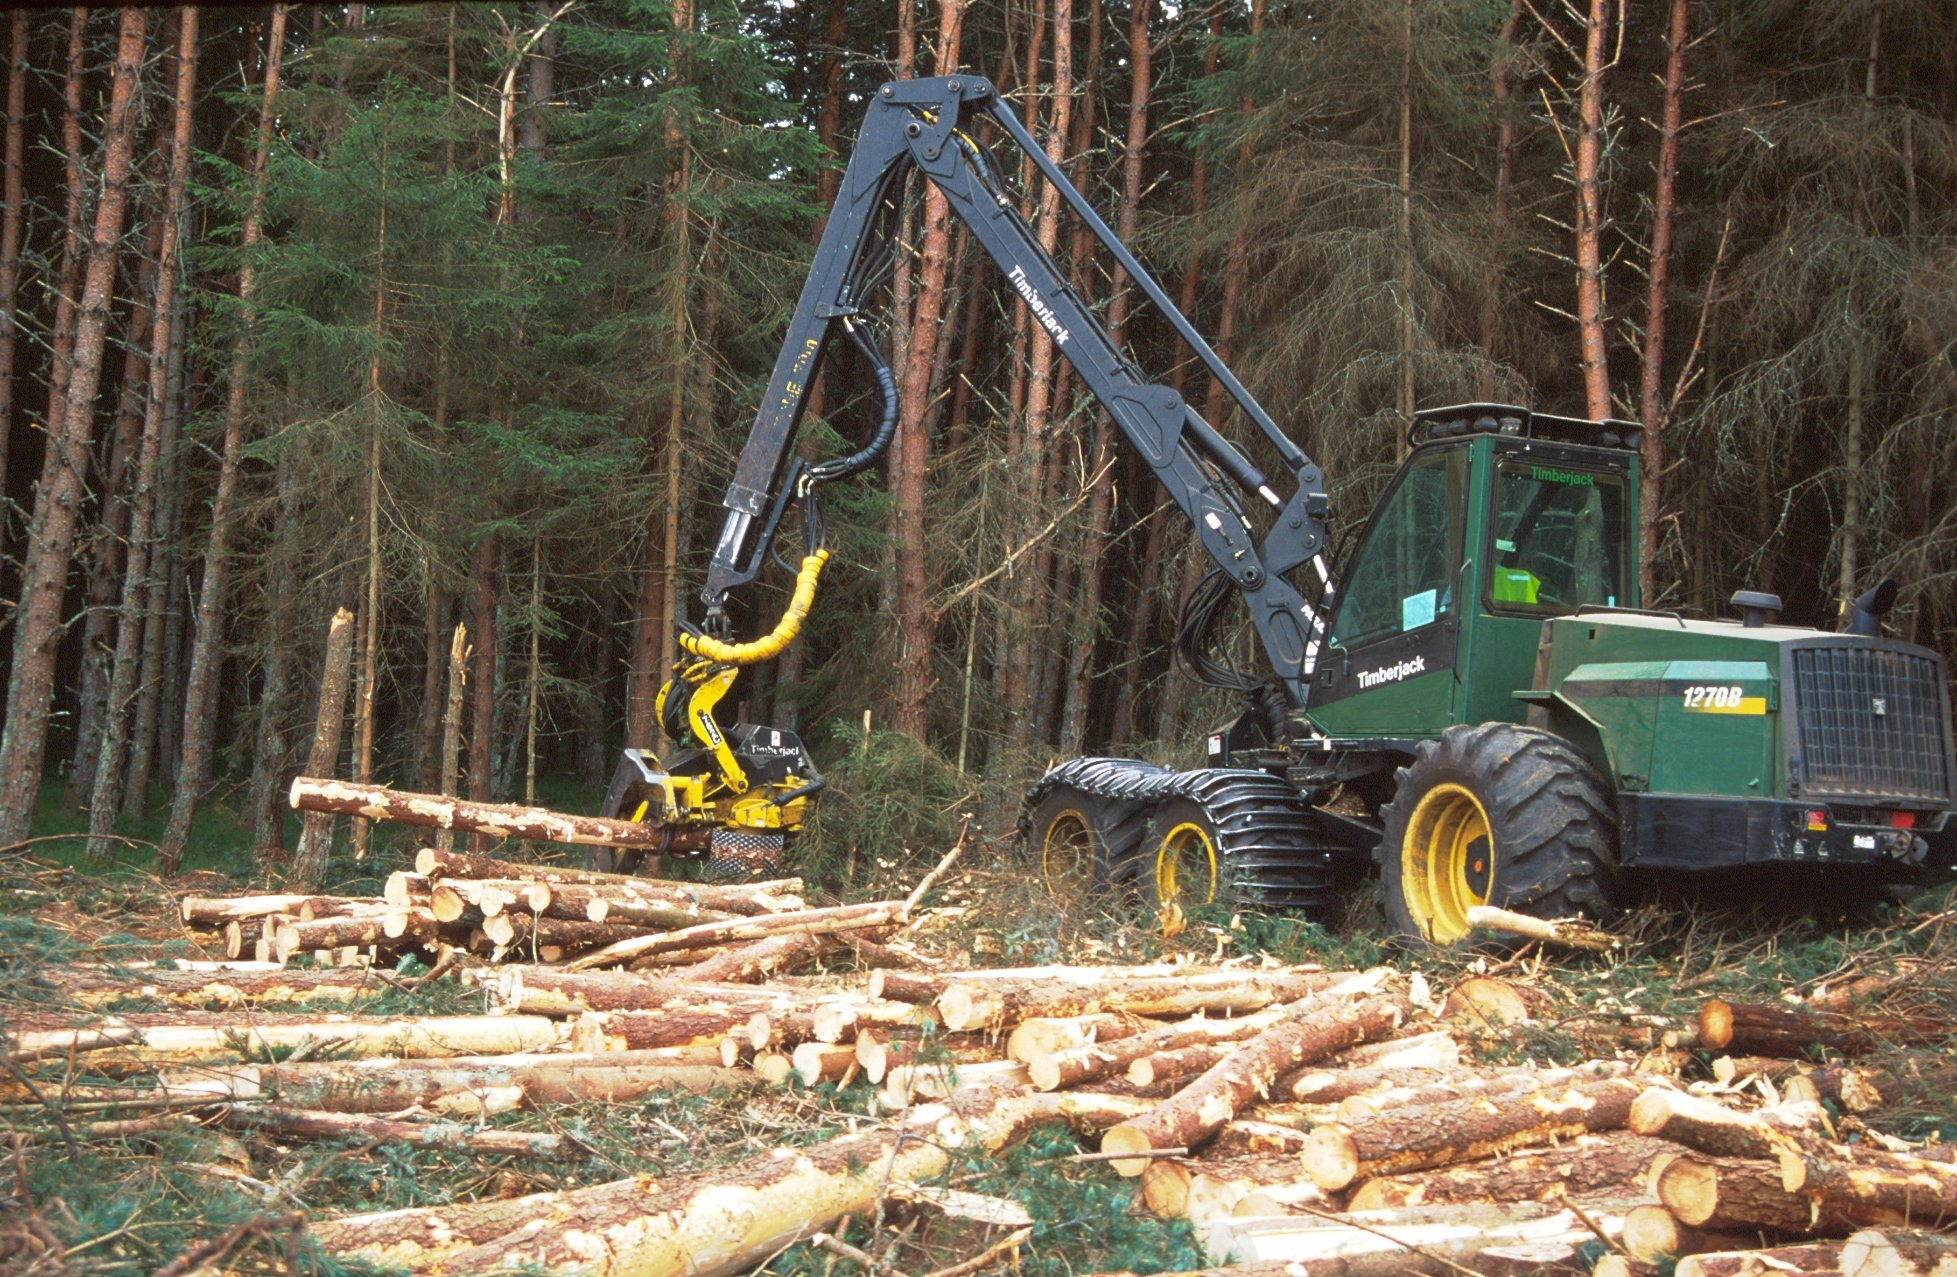 Scotland's future supply of wood in under political scrutiny